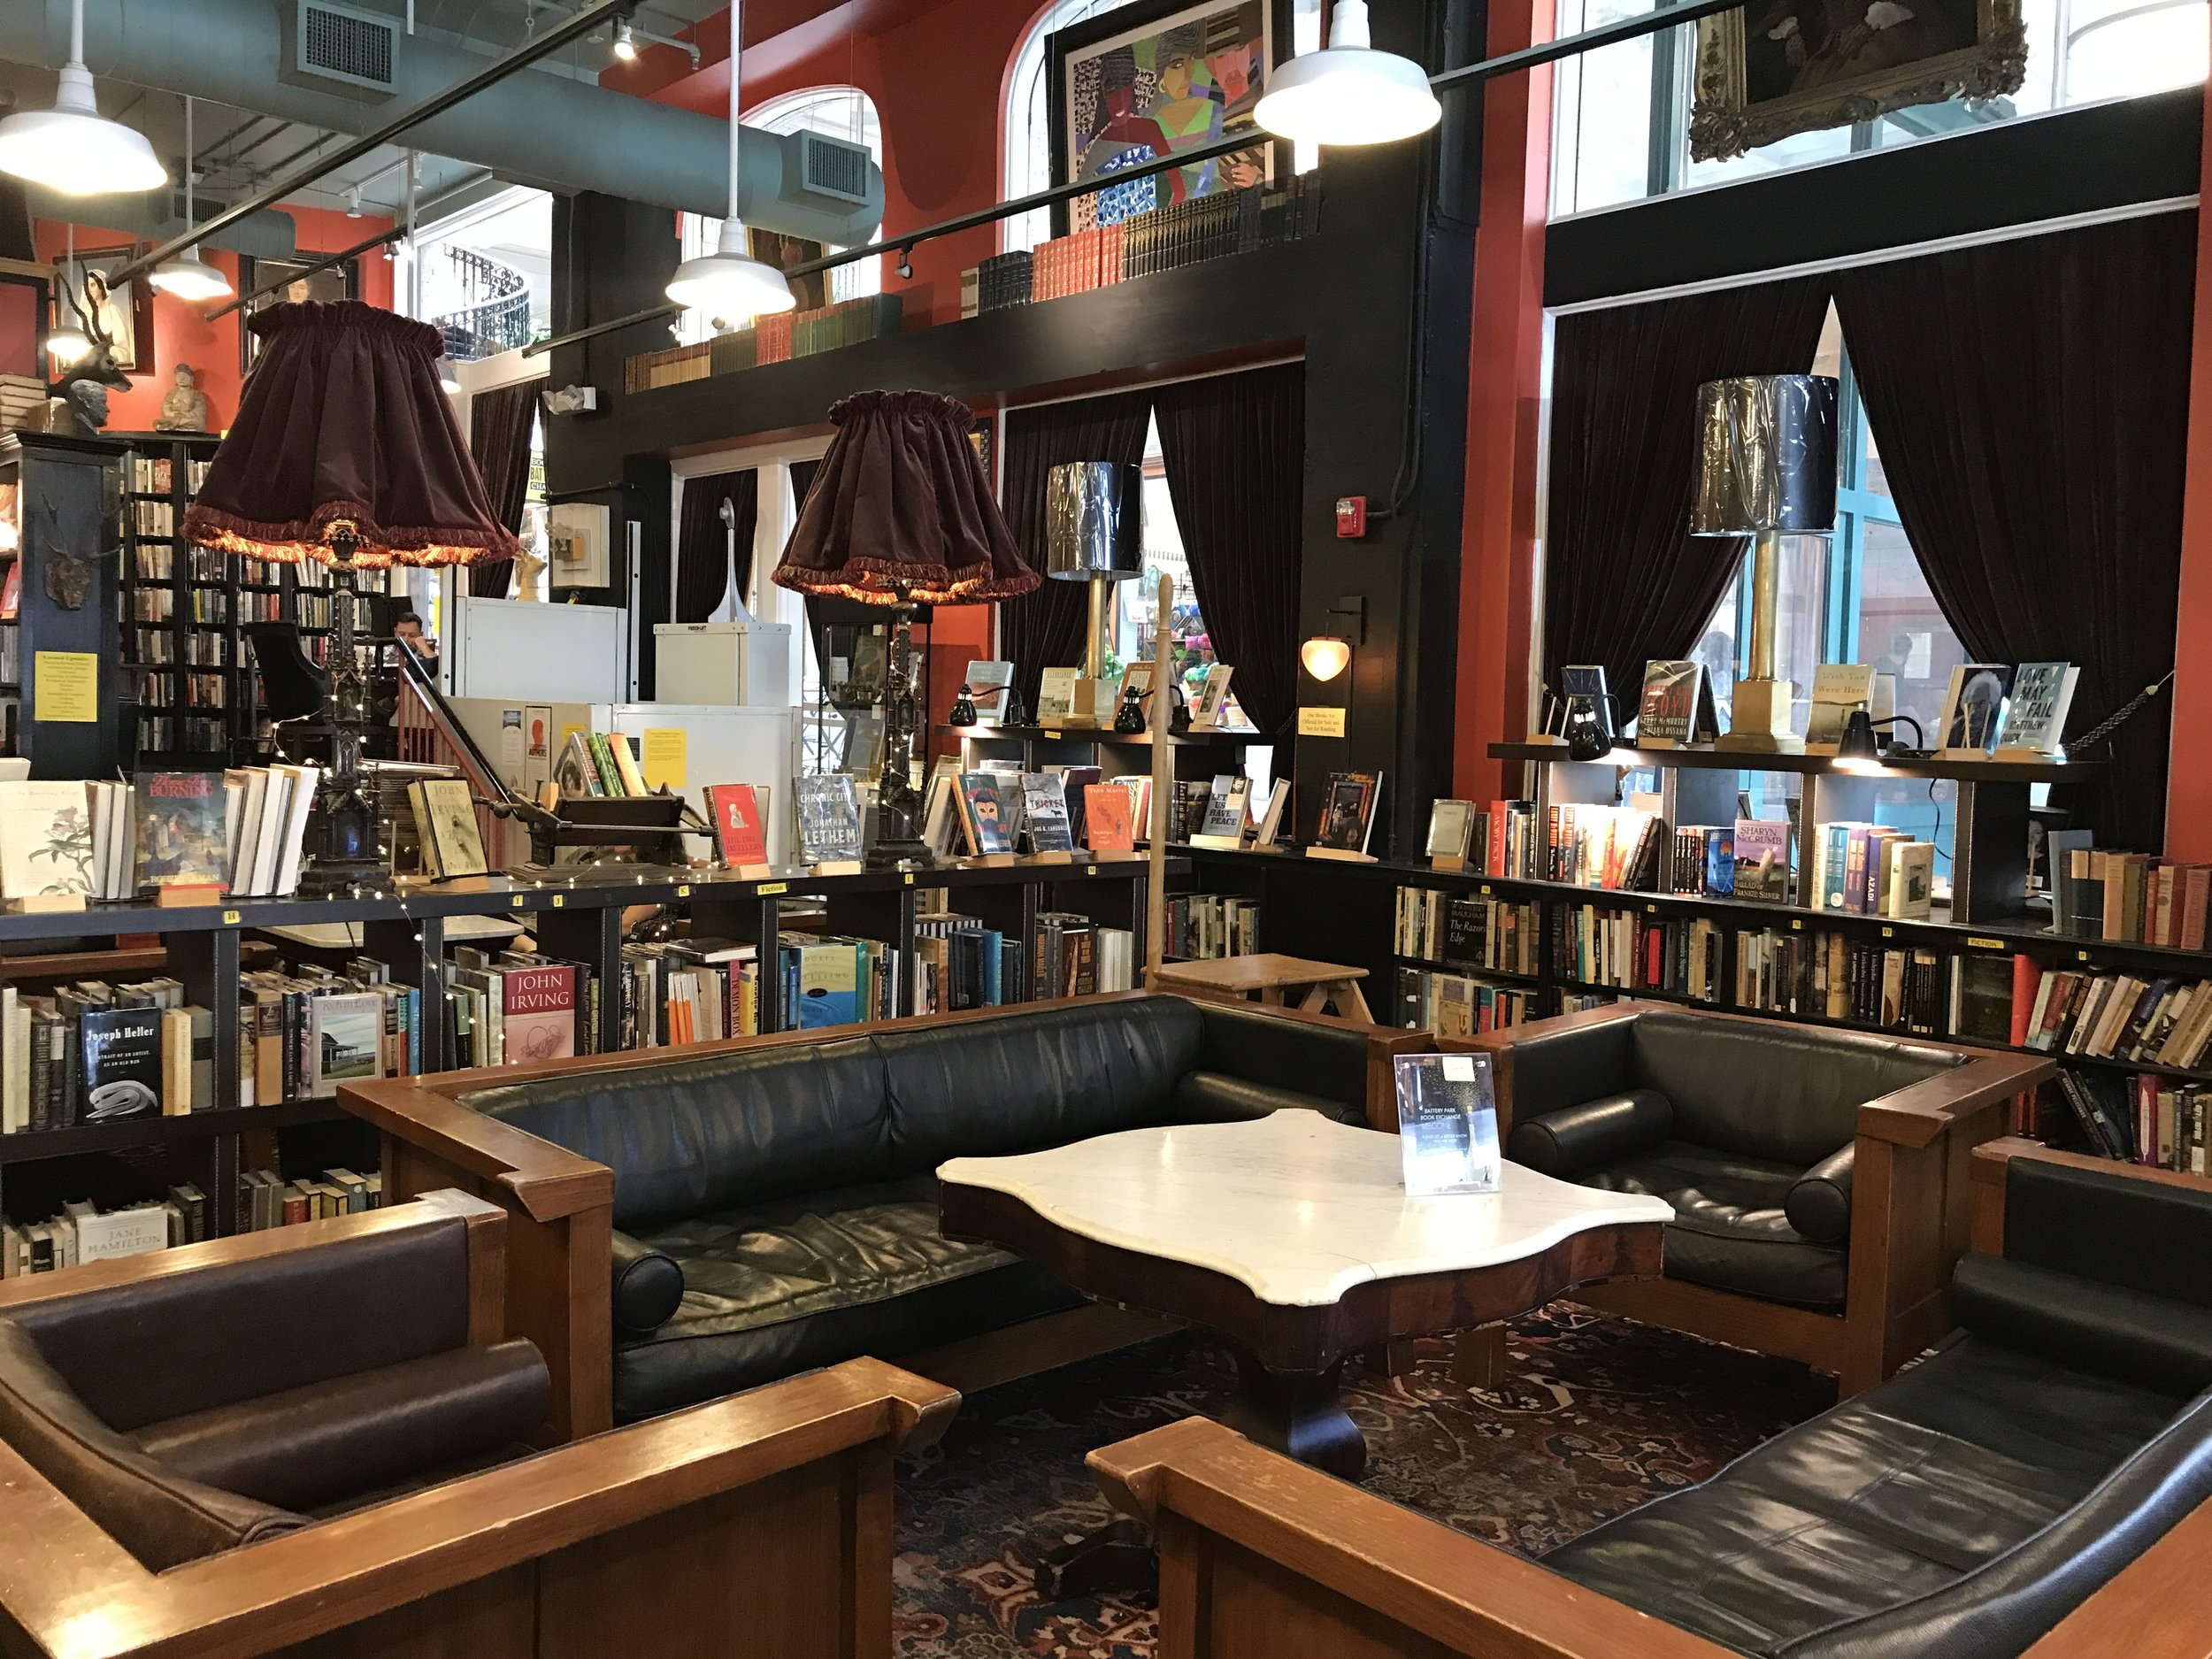 My favorite find -- the Battery Park Book Exchange & Champagne Bar